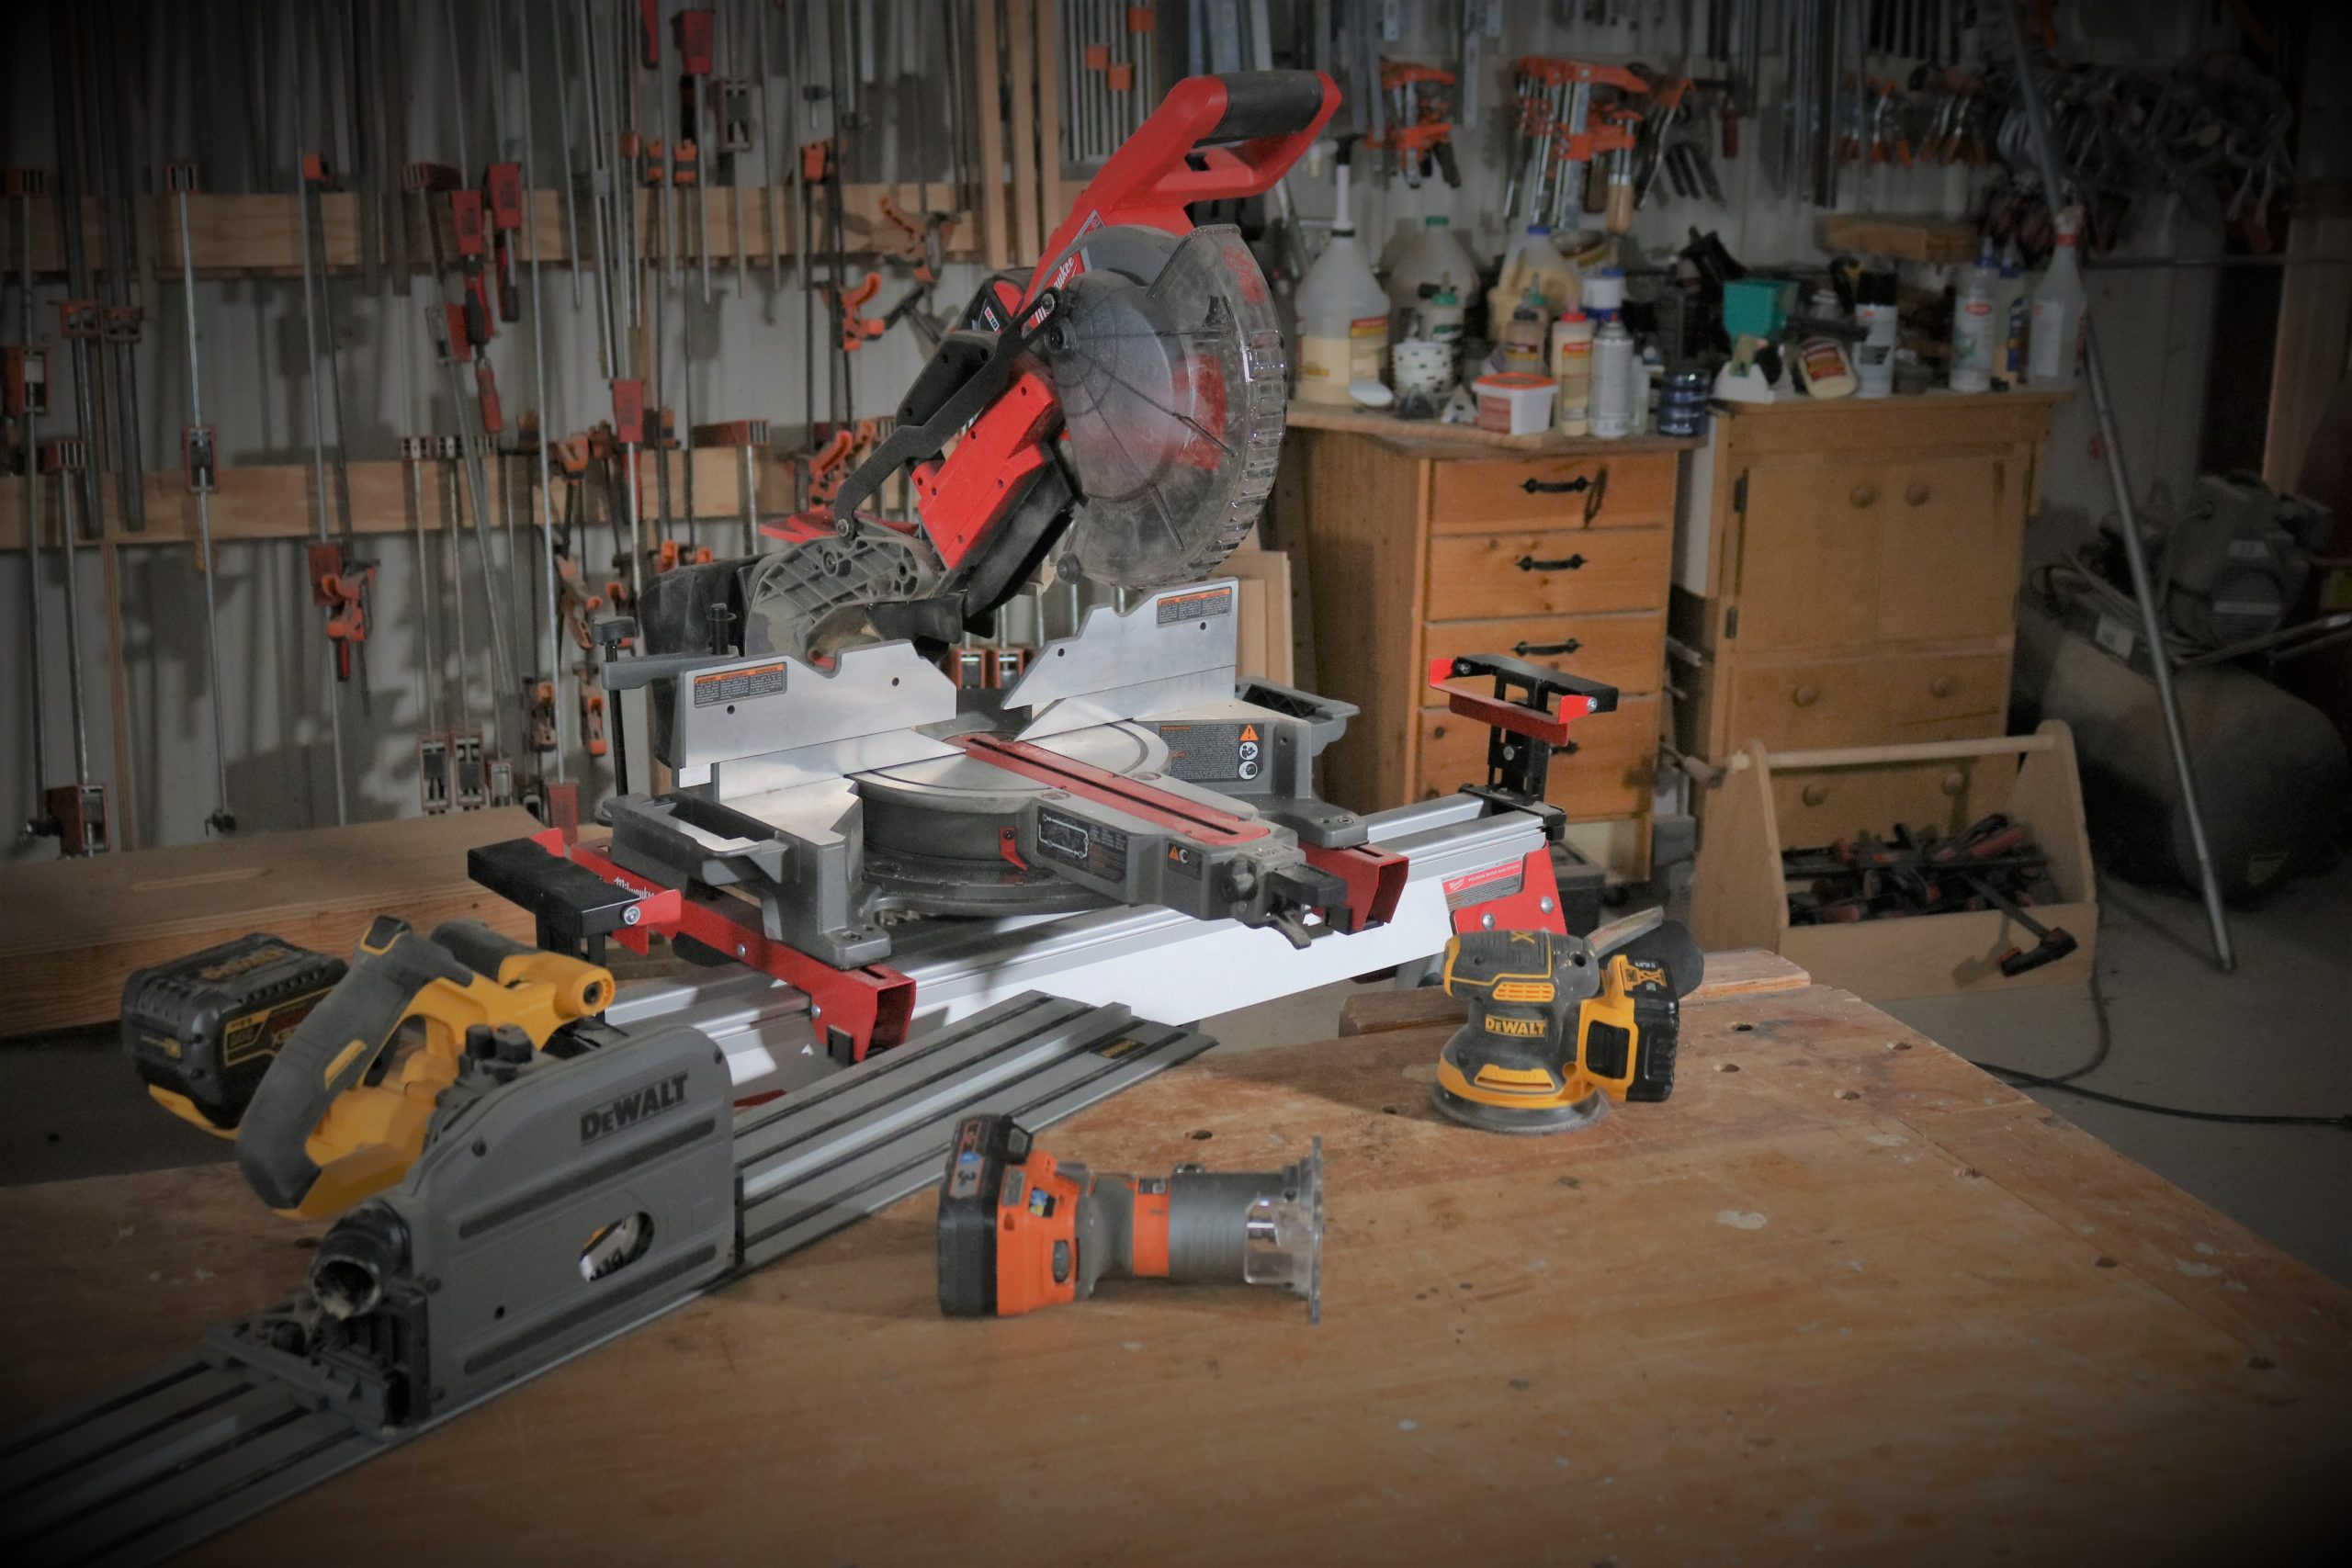 picture of cordless tools on a work table